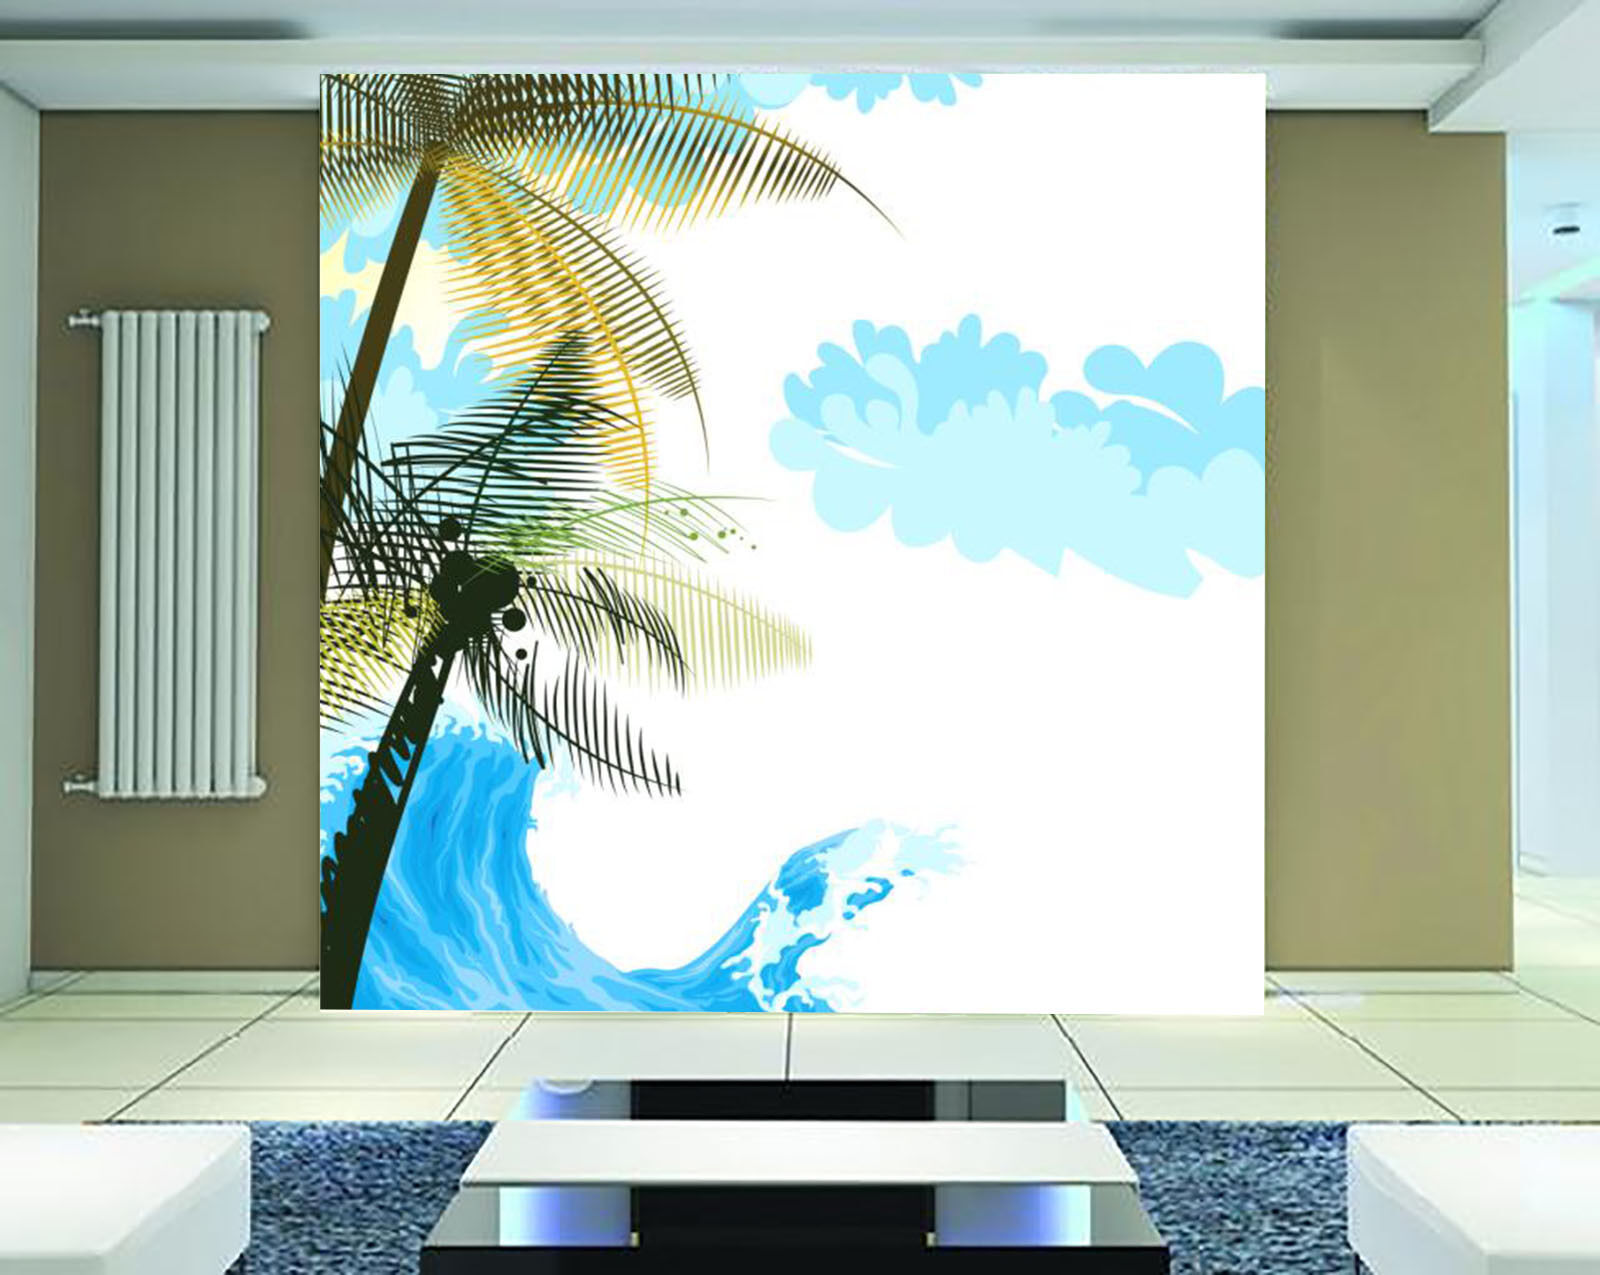 3D Seaside Coconut Tree Wall Paper wall Print Decal Wall Deco Indoor wall Mural